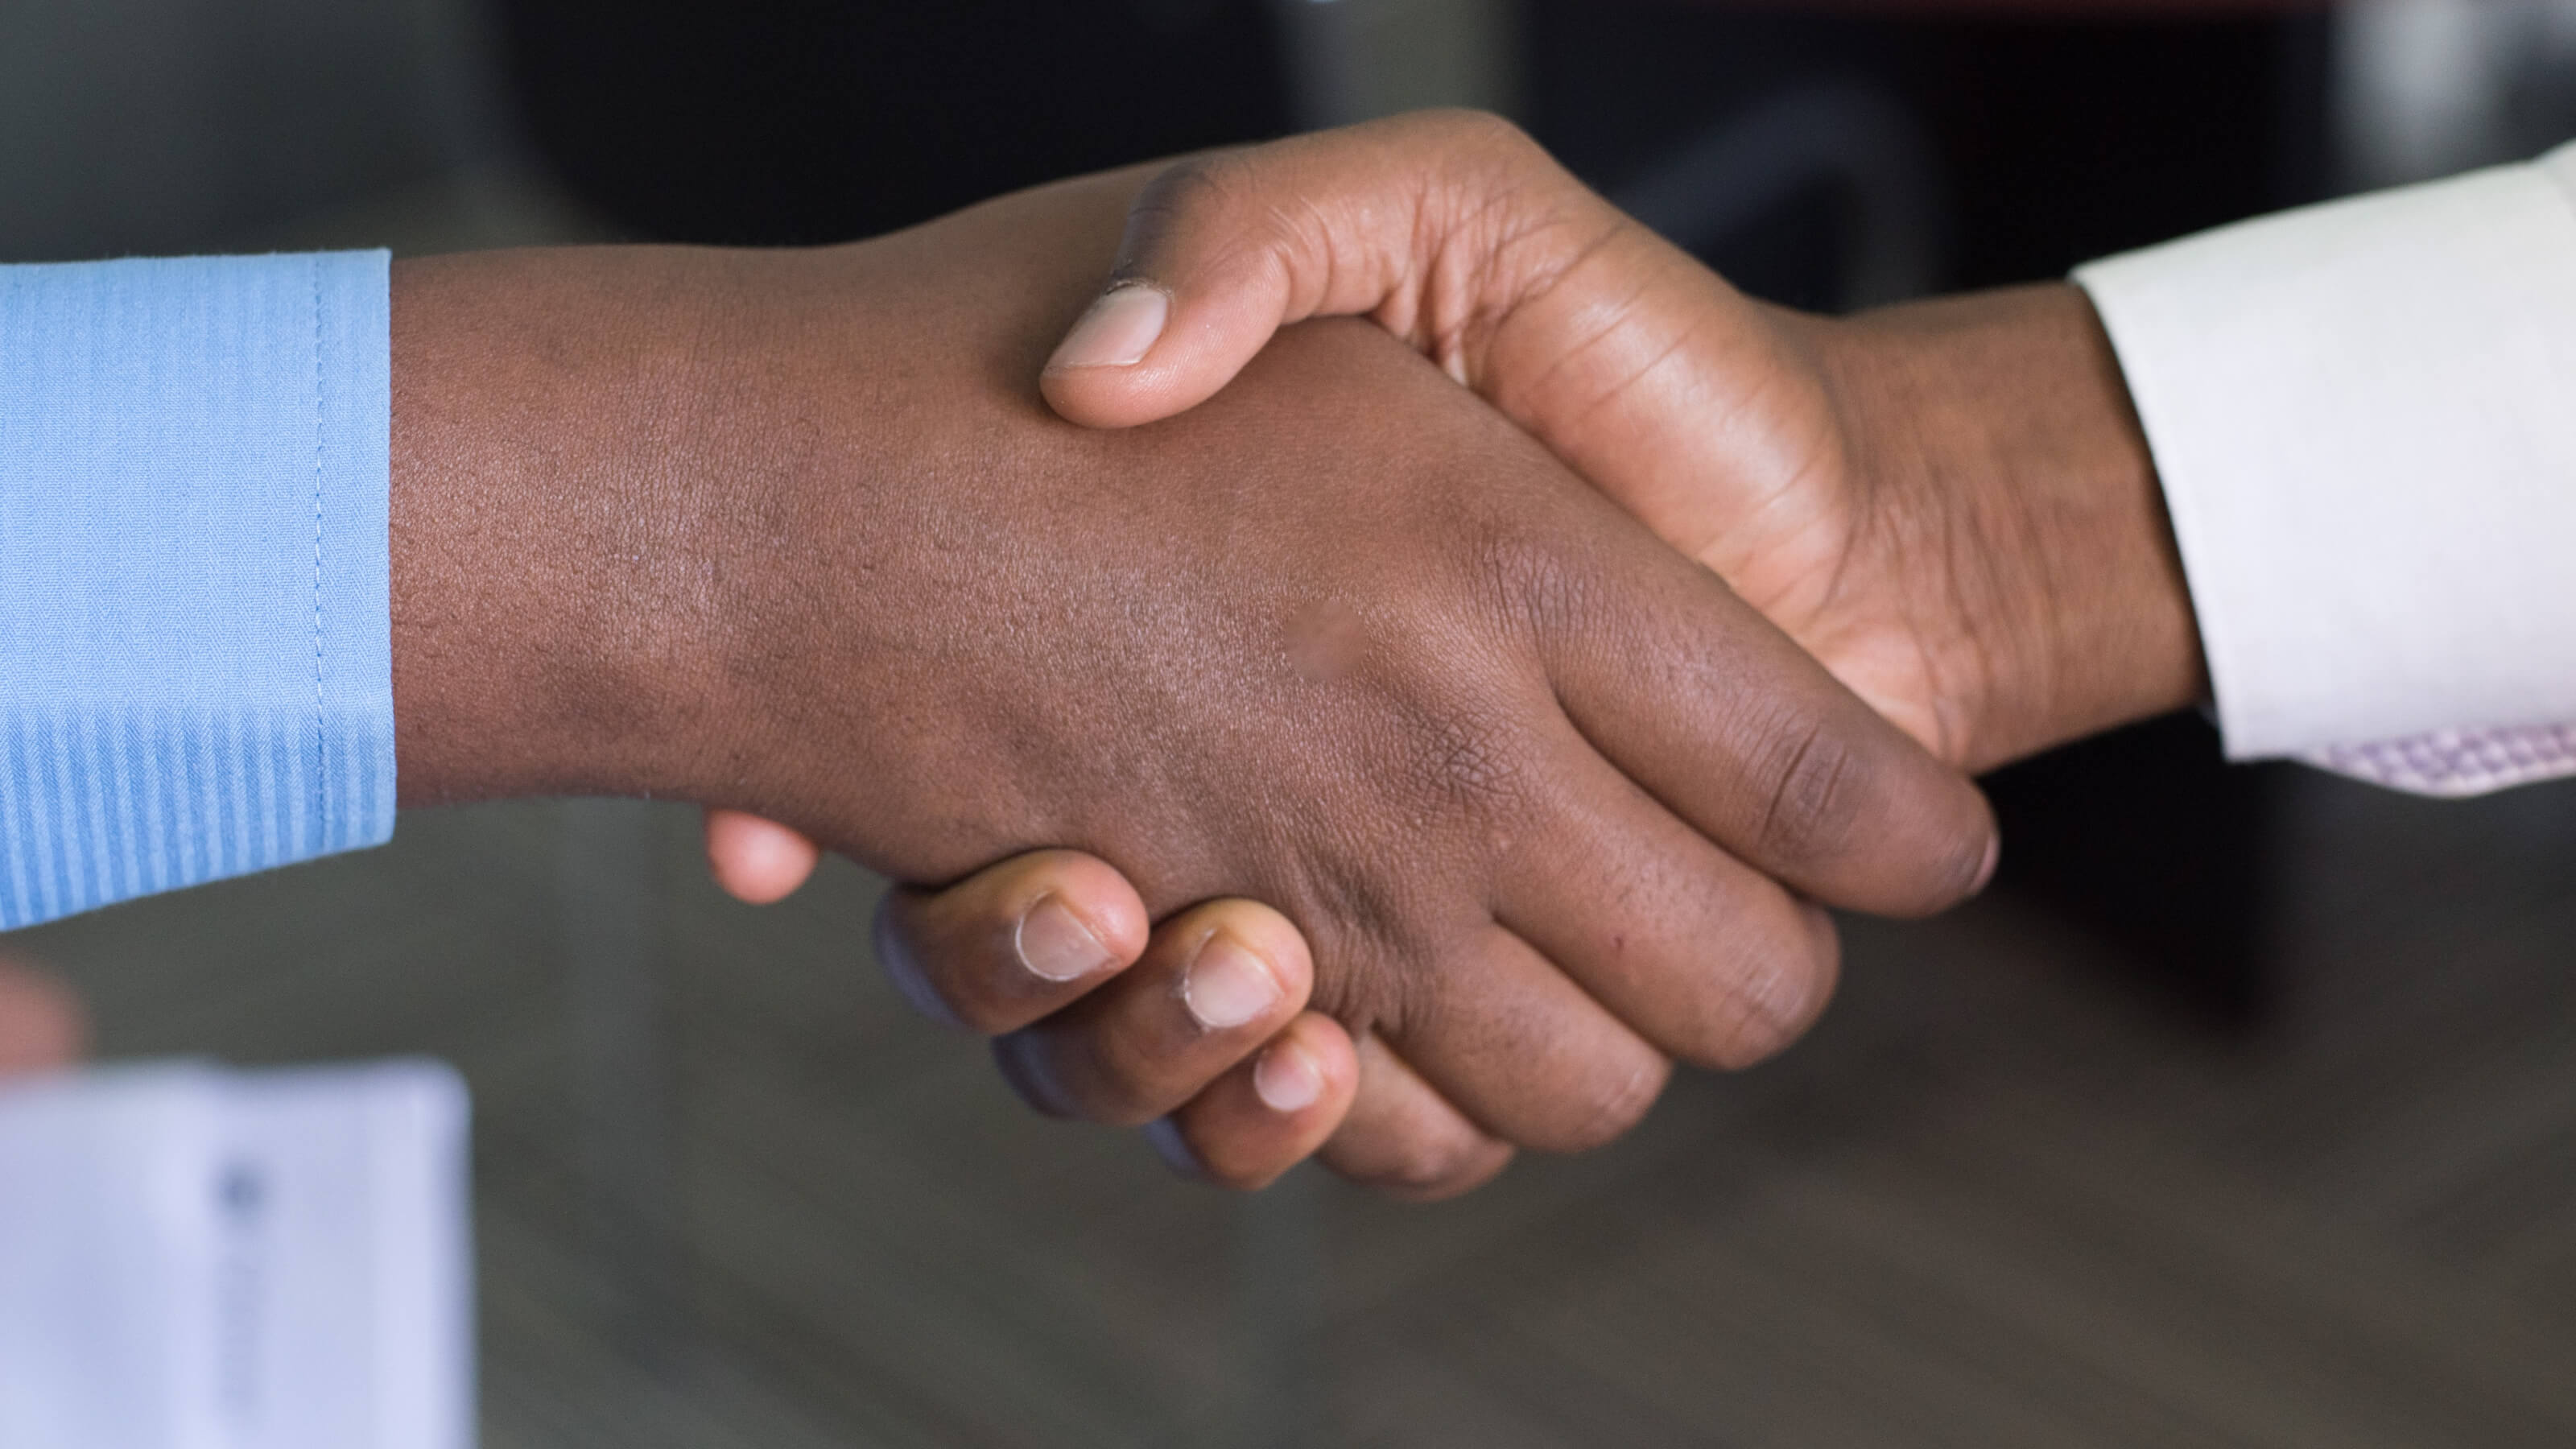 Two people shake hands as a sign of peace and reconciliation